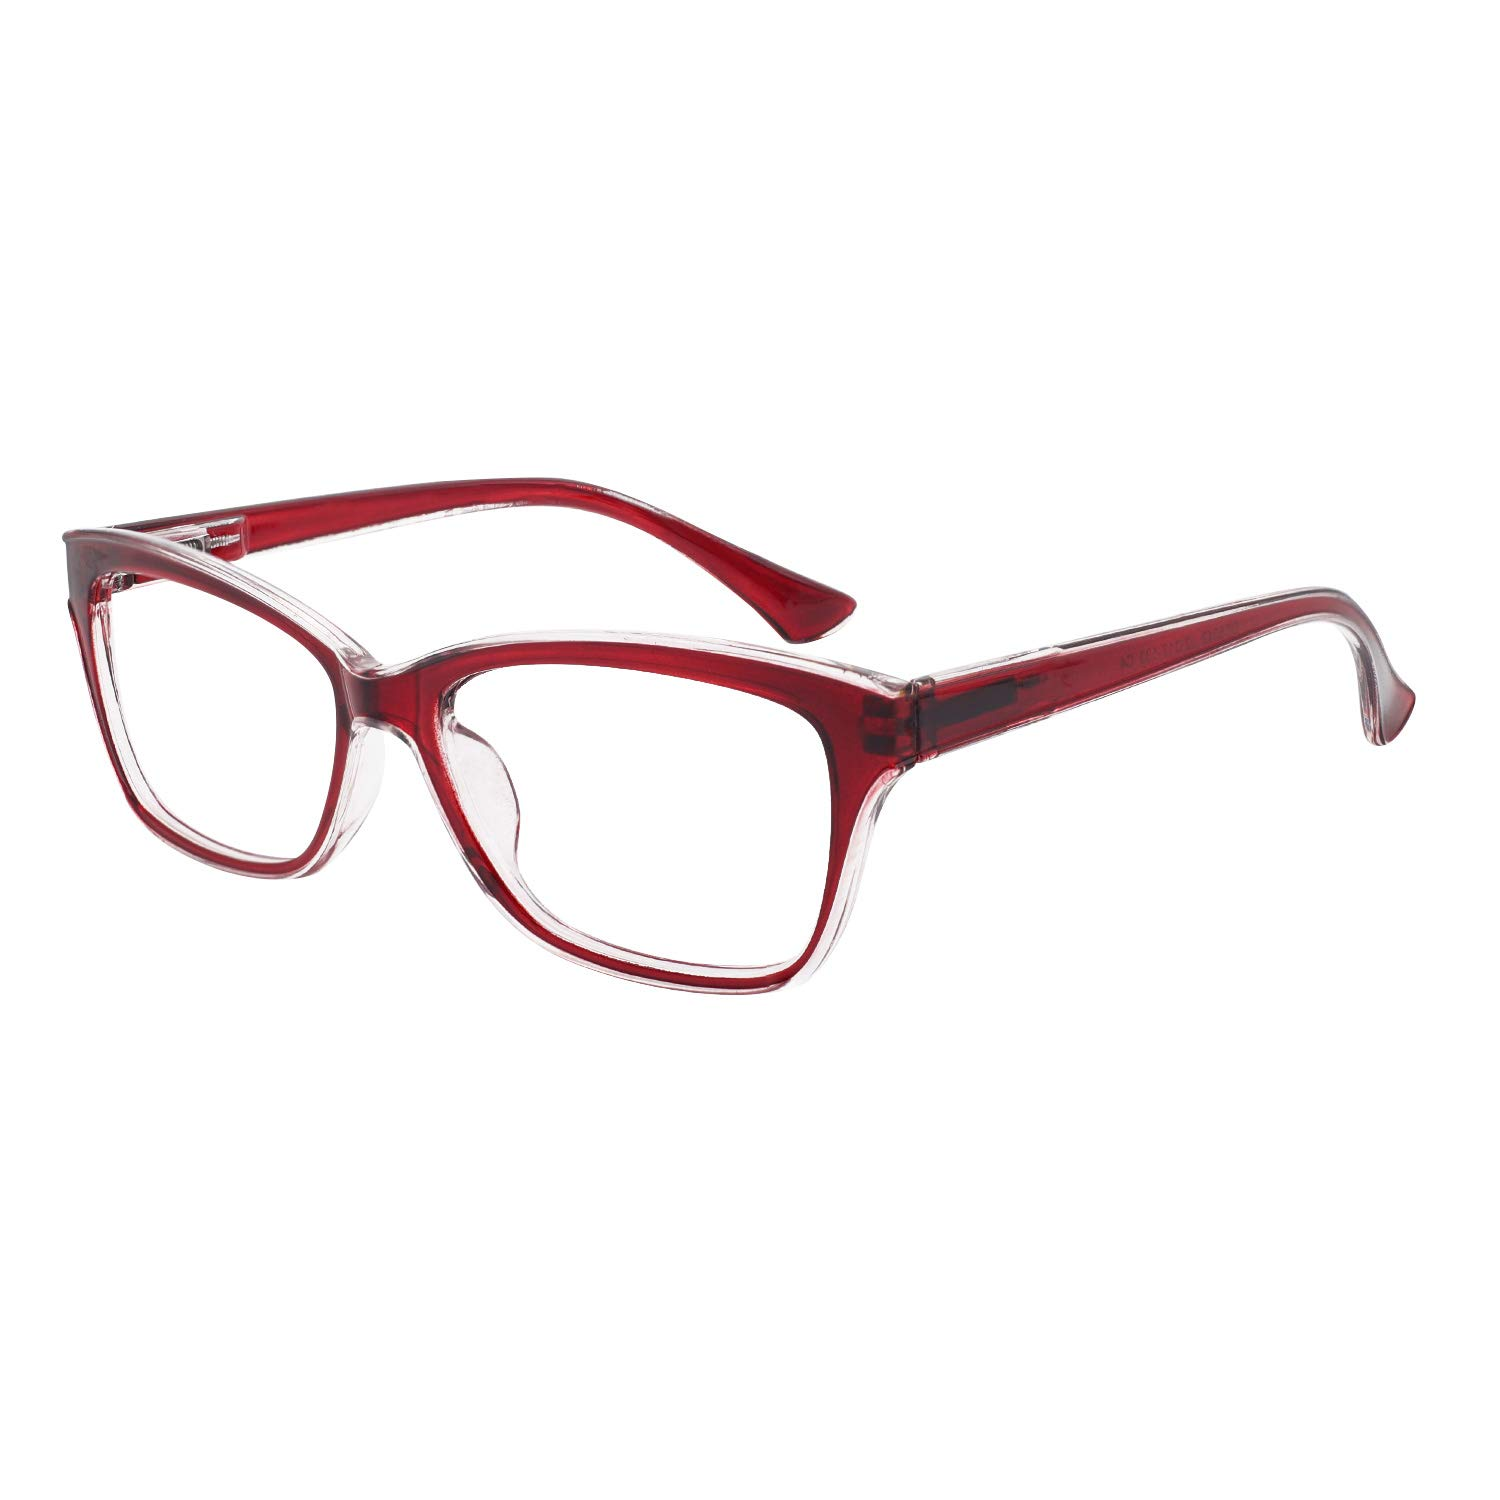 MARE AZZURO Stylish Reading Glasses Women Anti UV Readers 0 1 1.5 2 2.5 3 3.5